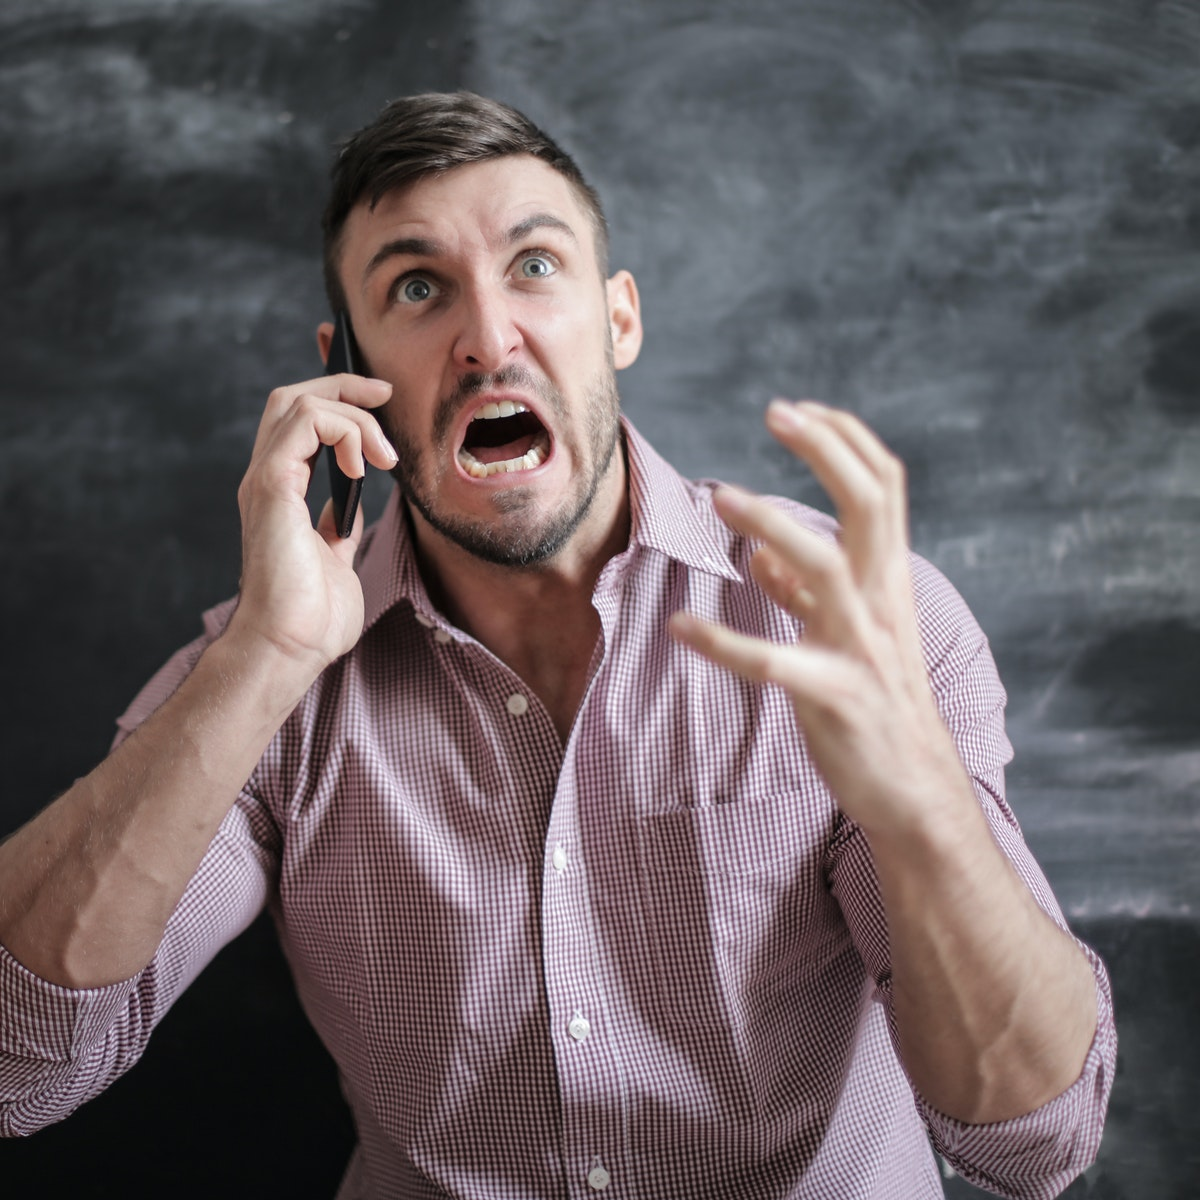 My Agent ignores my calls,what should I do?